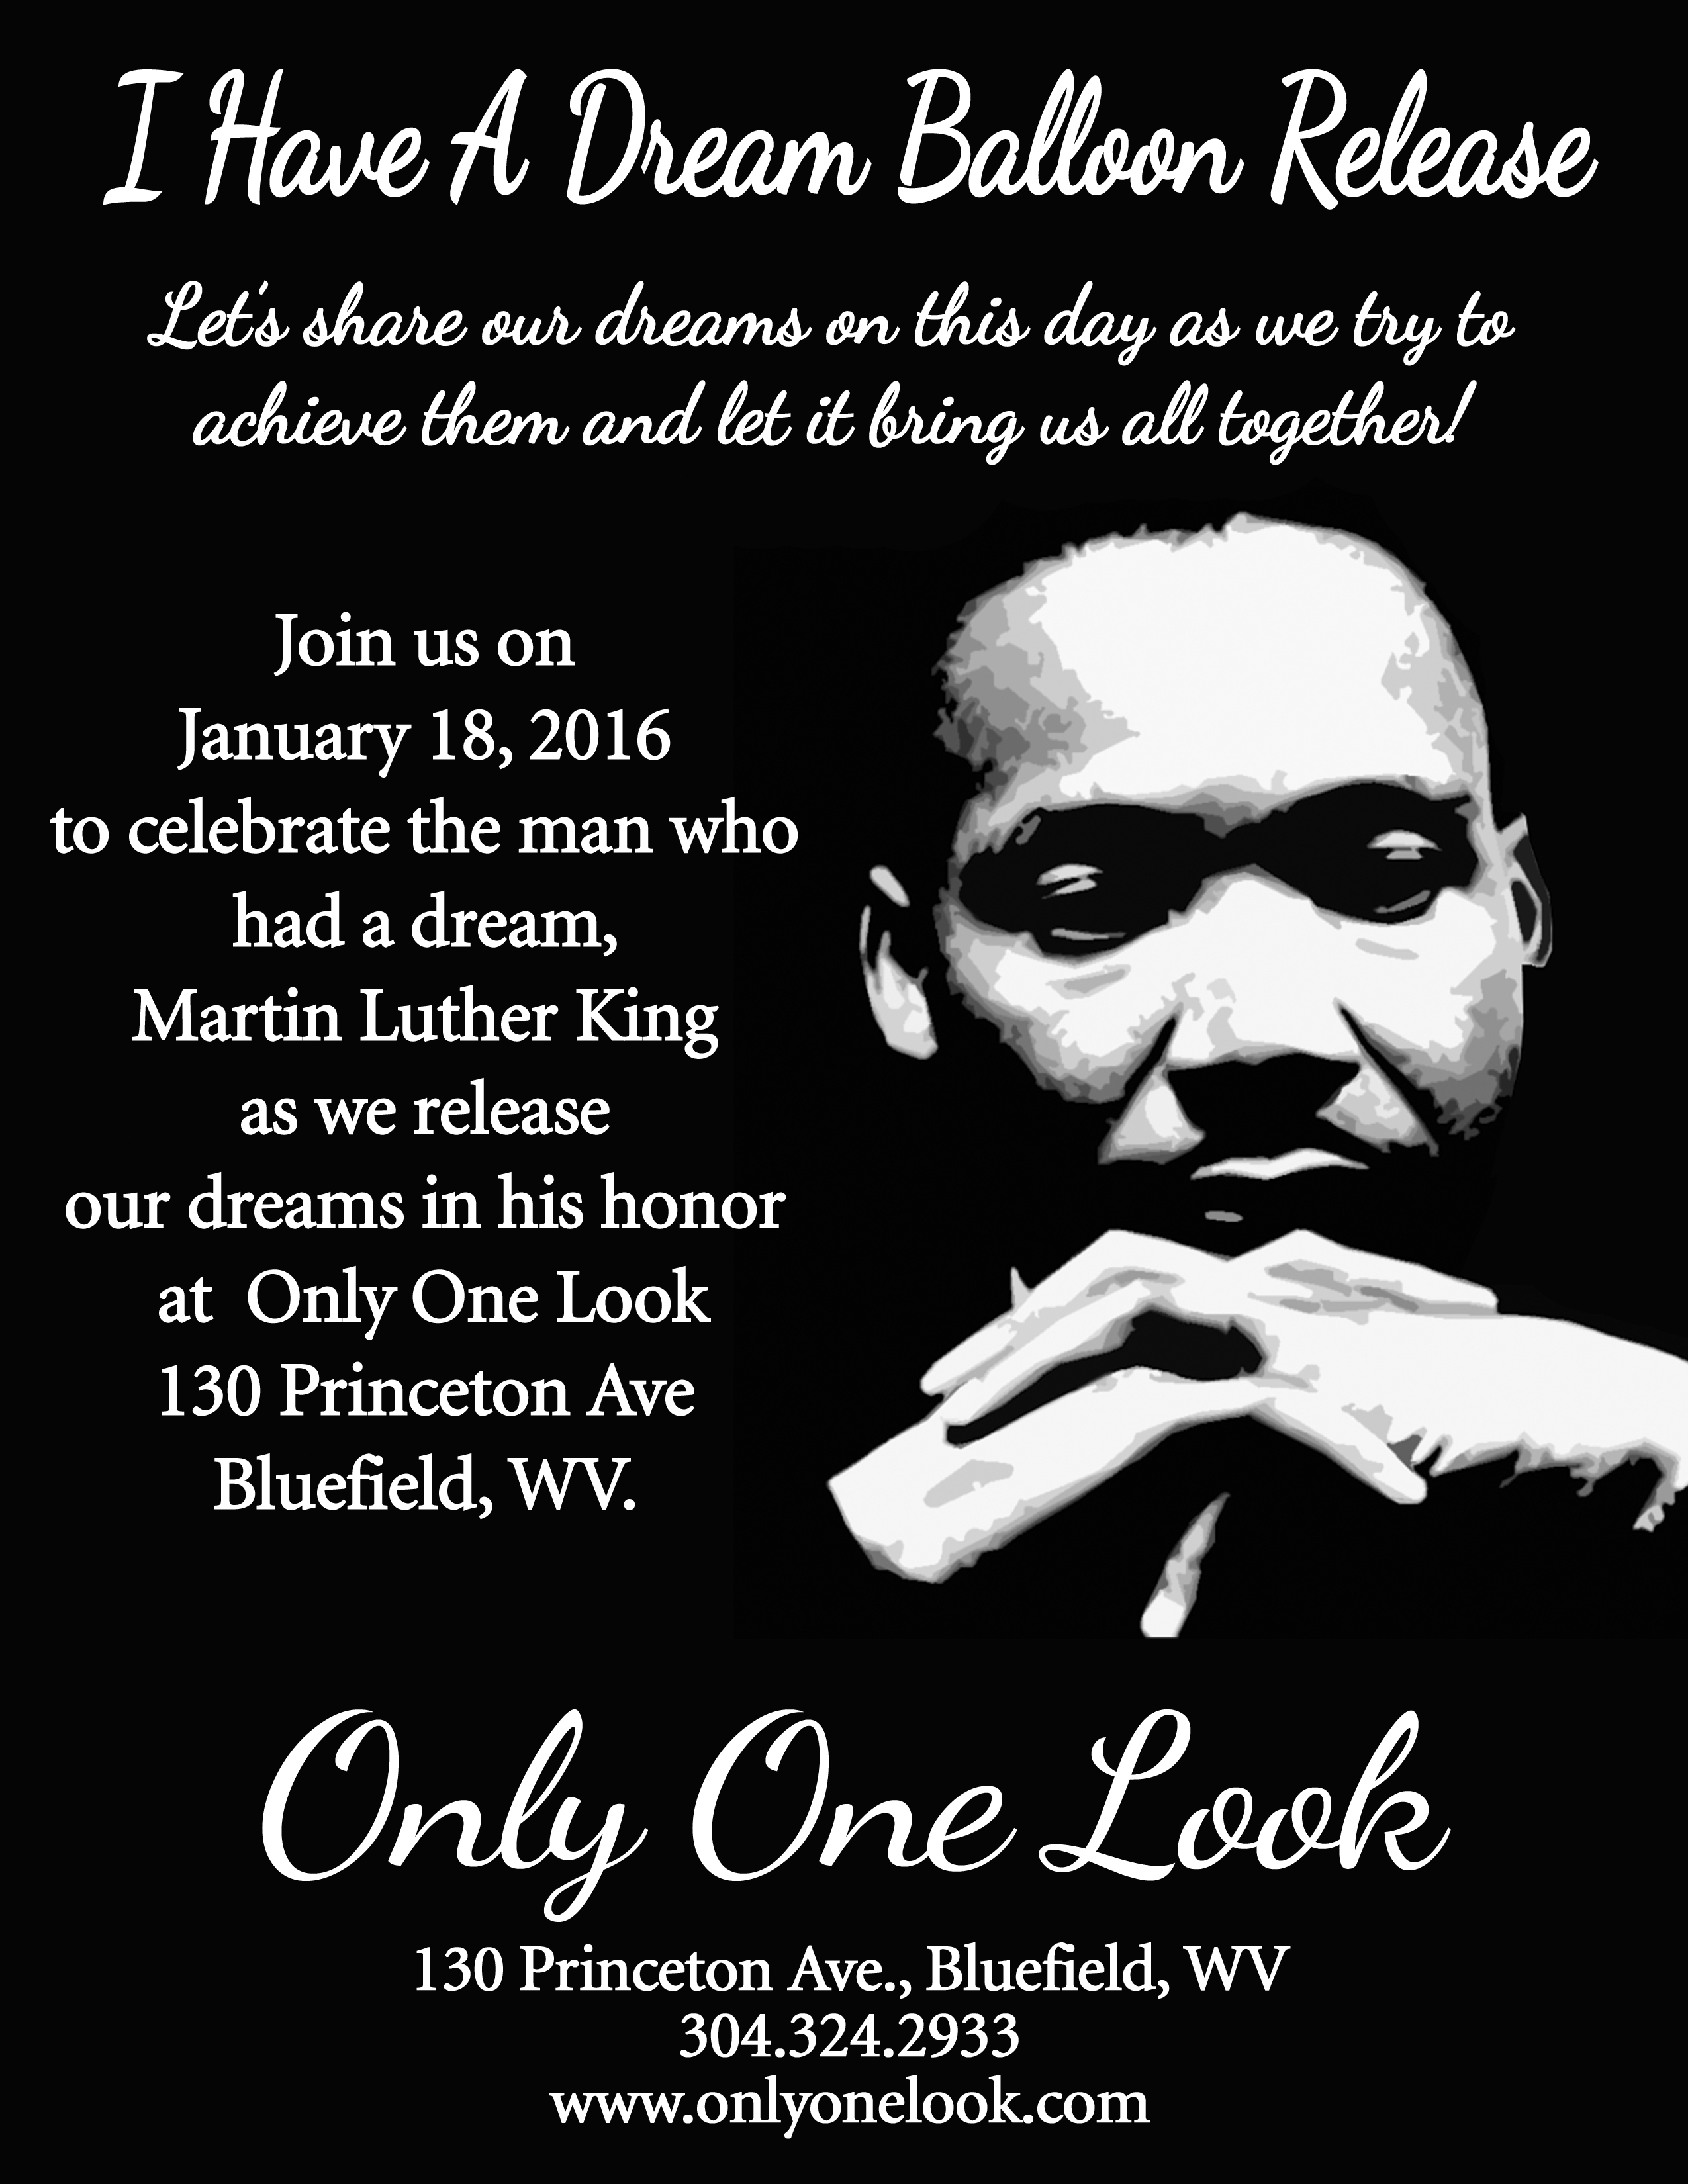 Martin Luther King I Have A Dream Balloon Release